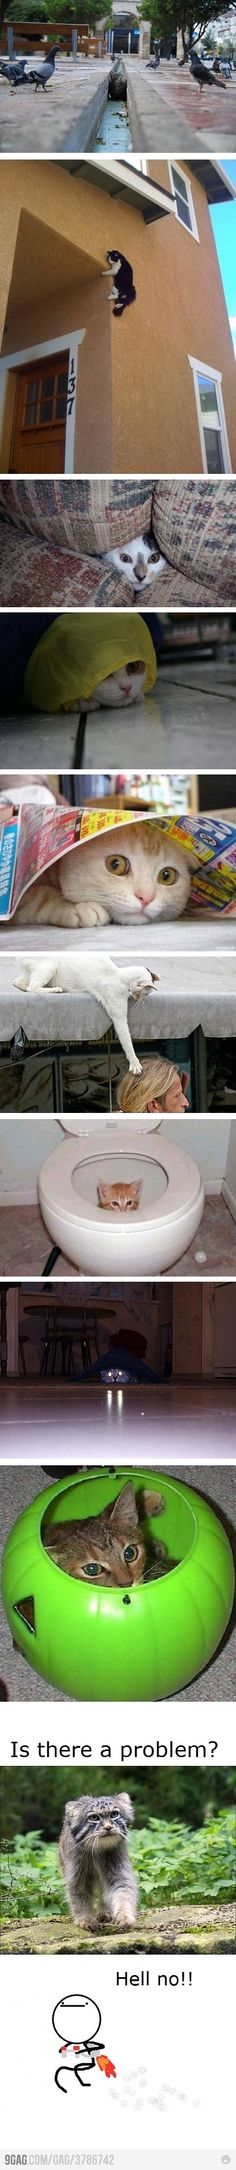 @Katie Byford is this why you don't like cats?